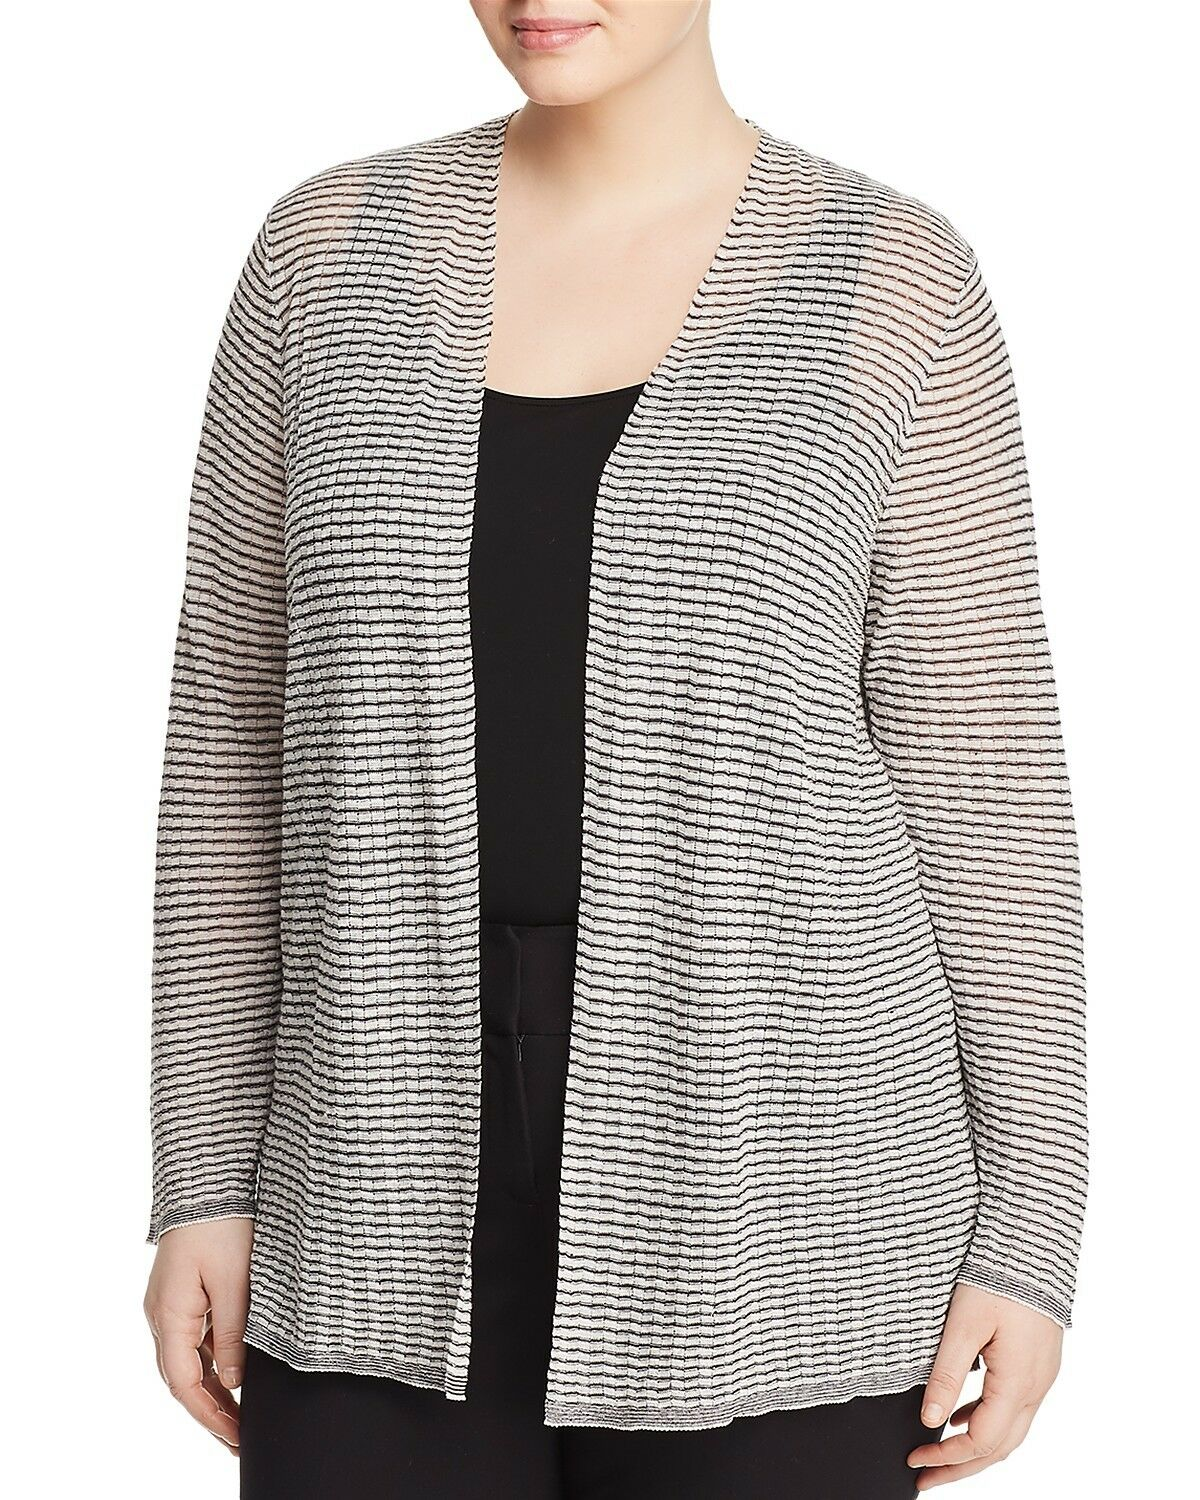 NEW EILEEN FISHER GRAPHITE BONE FINE ORGANIC LINEN CREPE KNIT CARDIGAN  2X